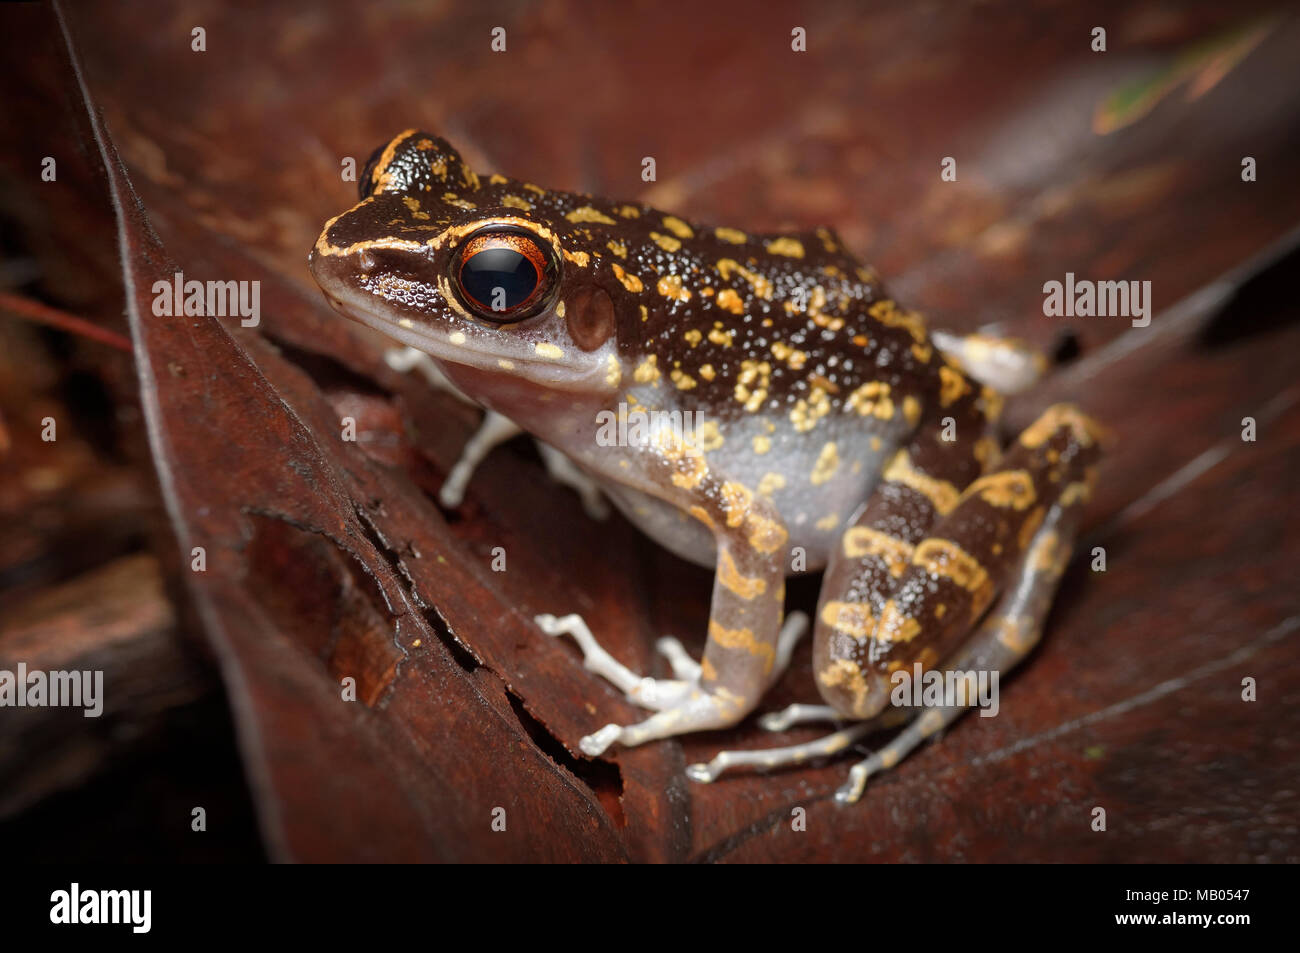 Spotted stream frog Hylarana picturata - Stock Image